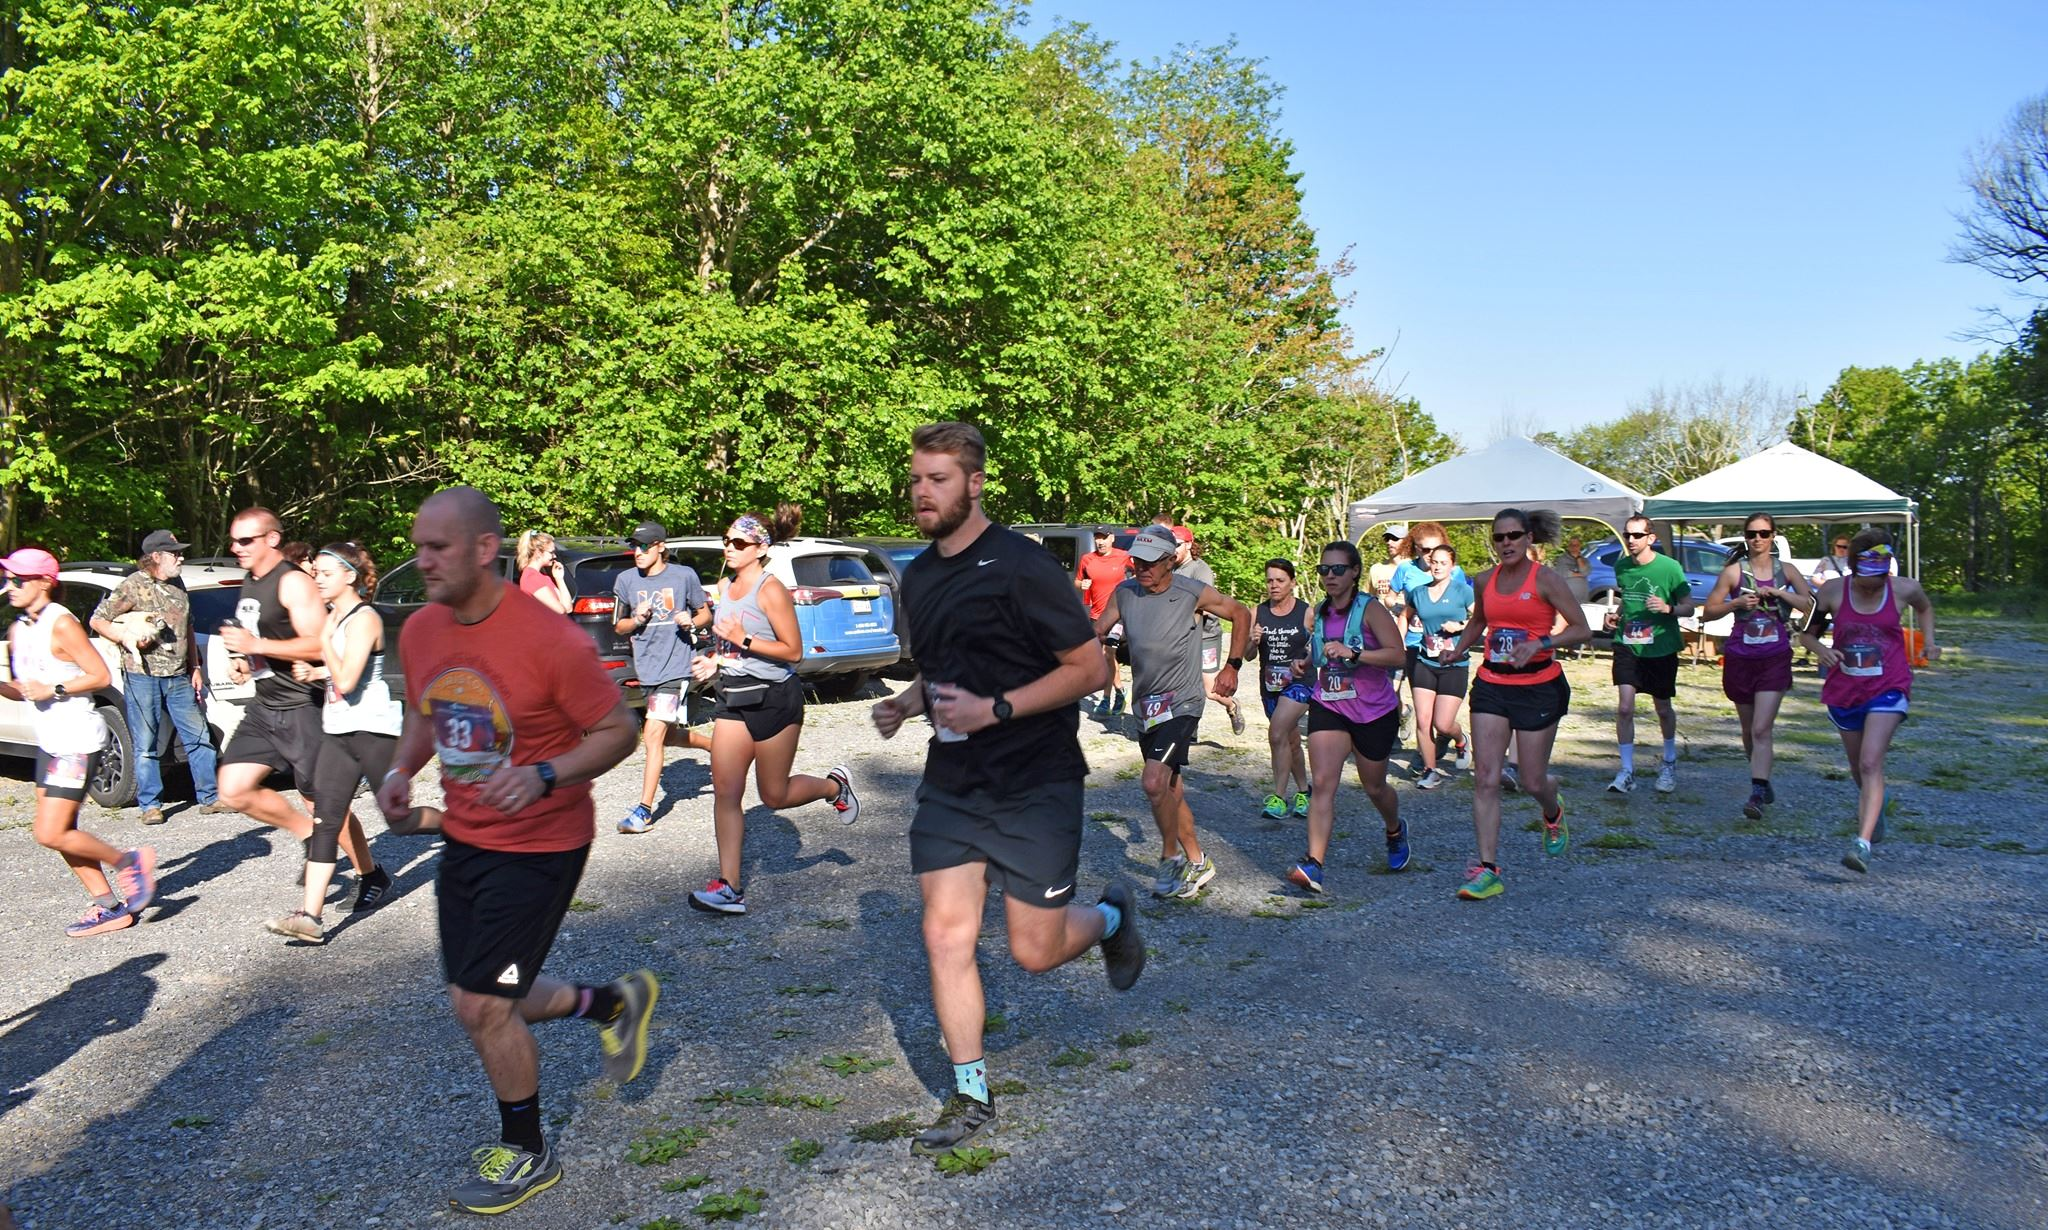 Photo of runners participating in the Fit Farmer 12K Trail Run